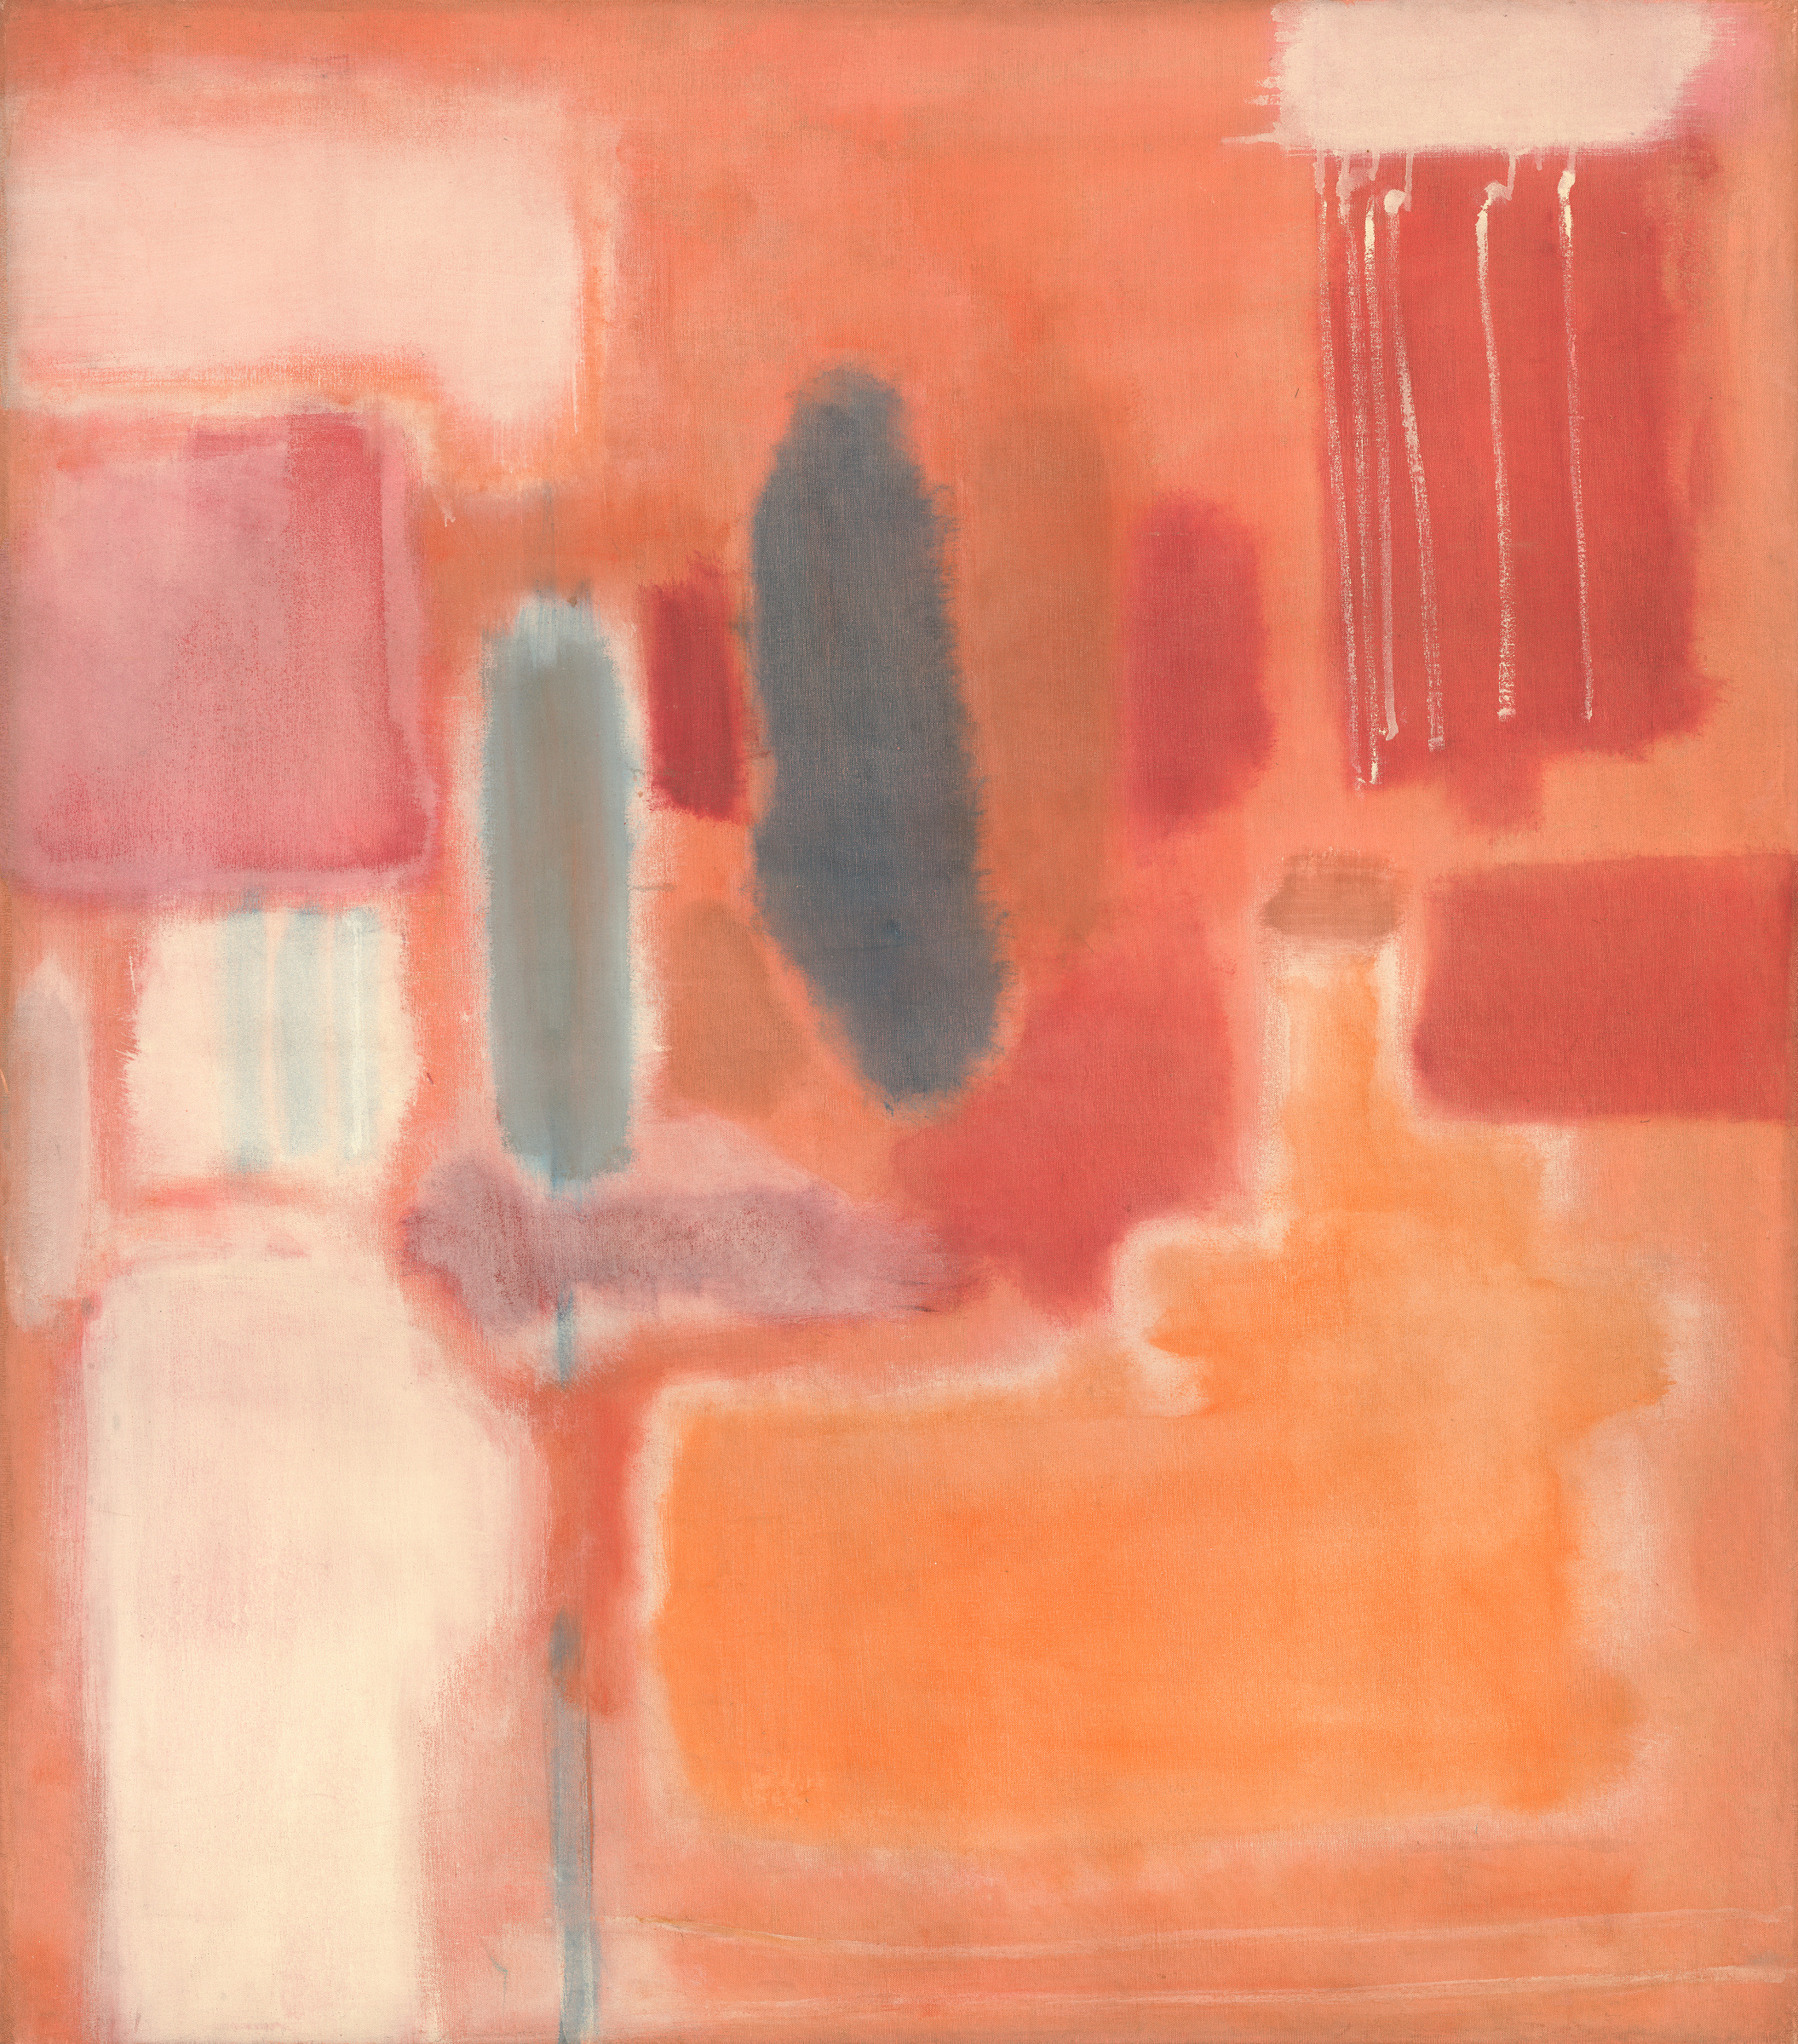 artist Mark Rothko, No. 9, 1948, oil and mixed media on canvas, National Gallery of Art, Washington, Gift of The Mark Rothko Foundation, Inc. © 1998 by Kate Rothko Prizel and Christopher Rothko courtesy Museum of Fine Arts Houston